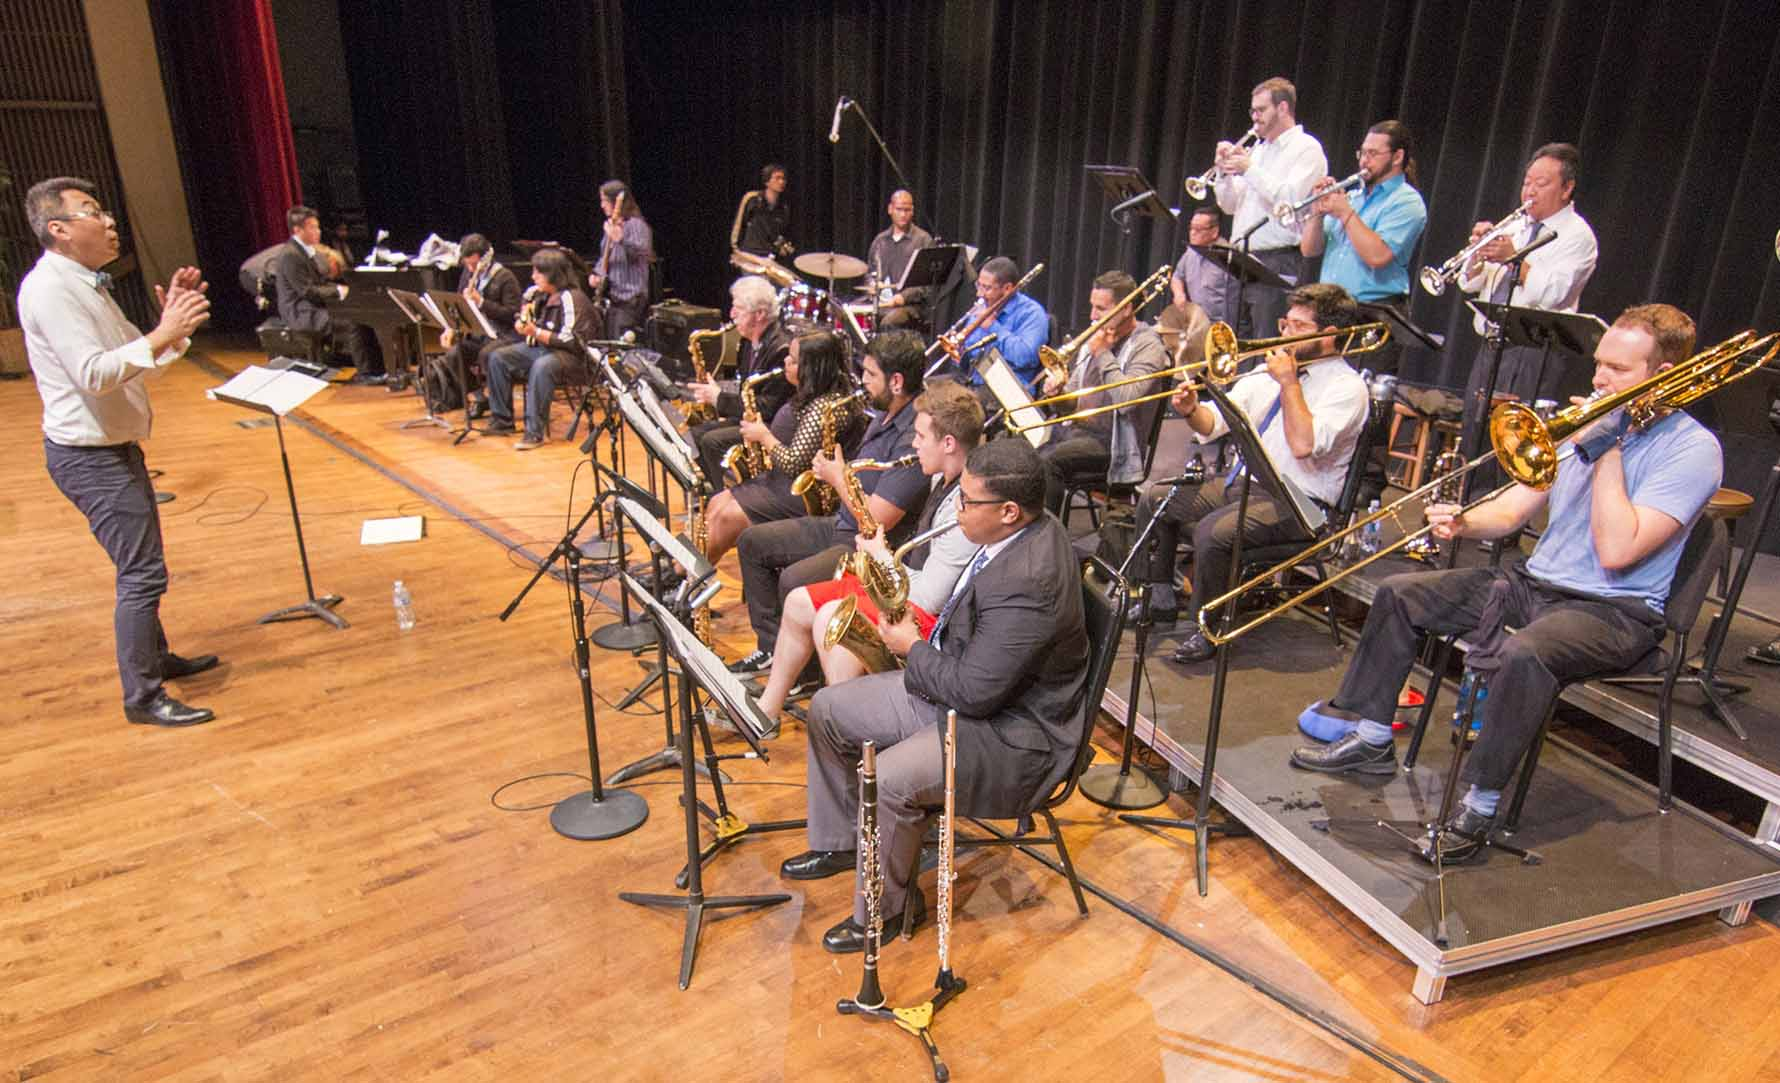 El Camino College's Center for the Arts, the Fine Arts Division and Jazz @ El Camino College will present a daylong series of musical performances and workshops in Marsee Auditorium on May 11.